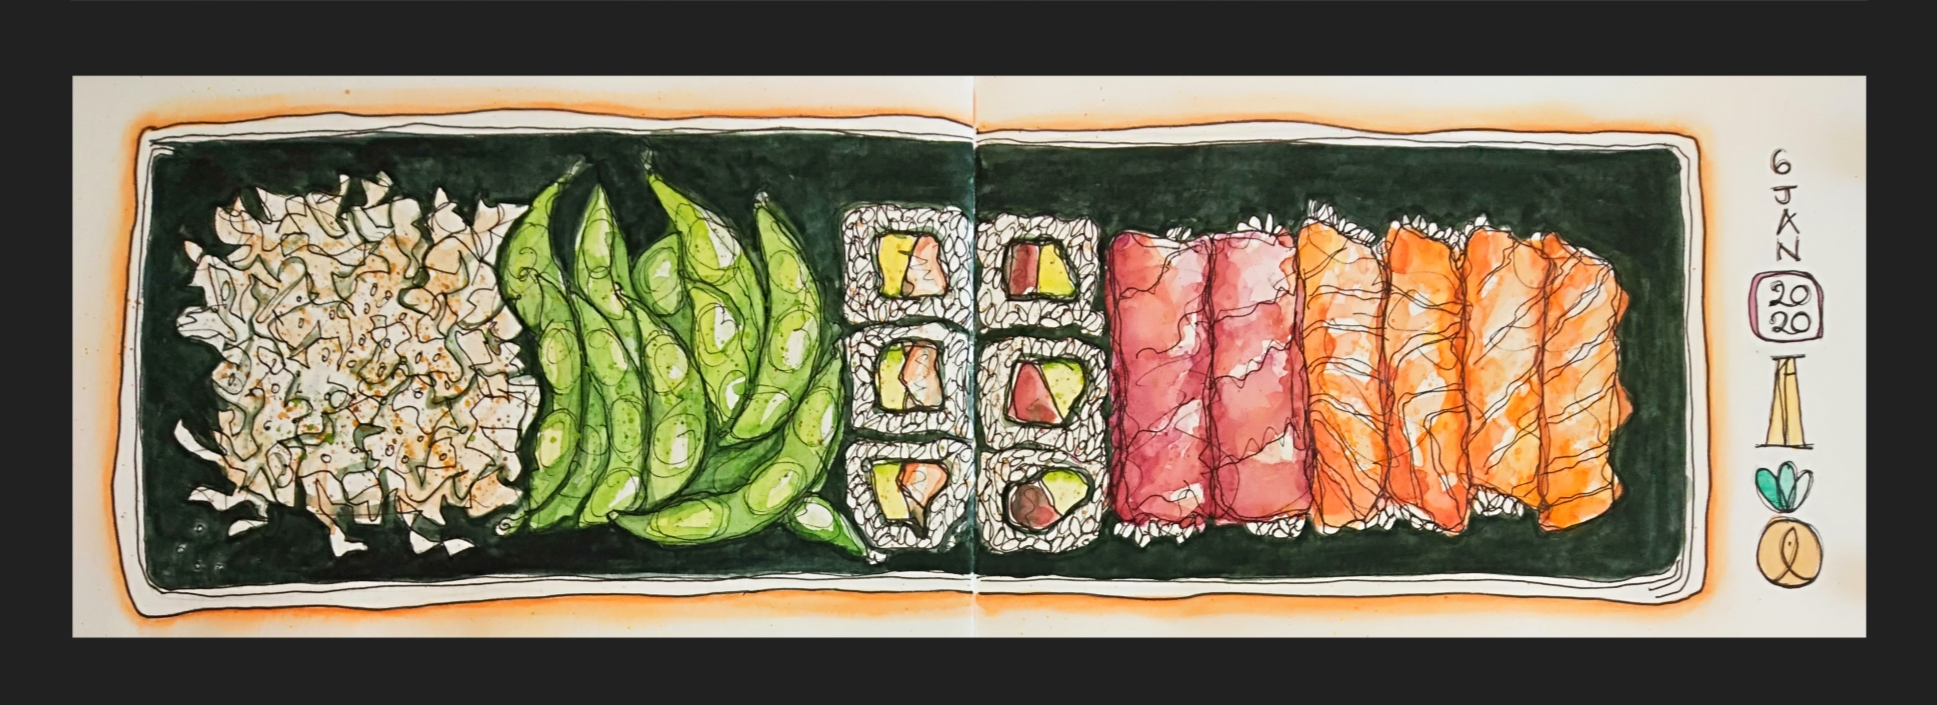 sushi, sushi shop, healthy eating, too good to go, fight food waste, watercolour, painting, sketchbook, pen and wash, food illustration, illustration, drawing